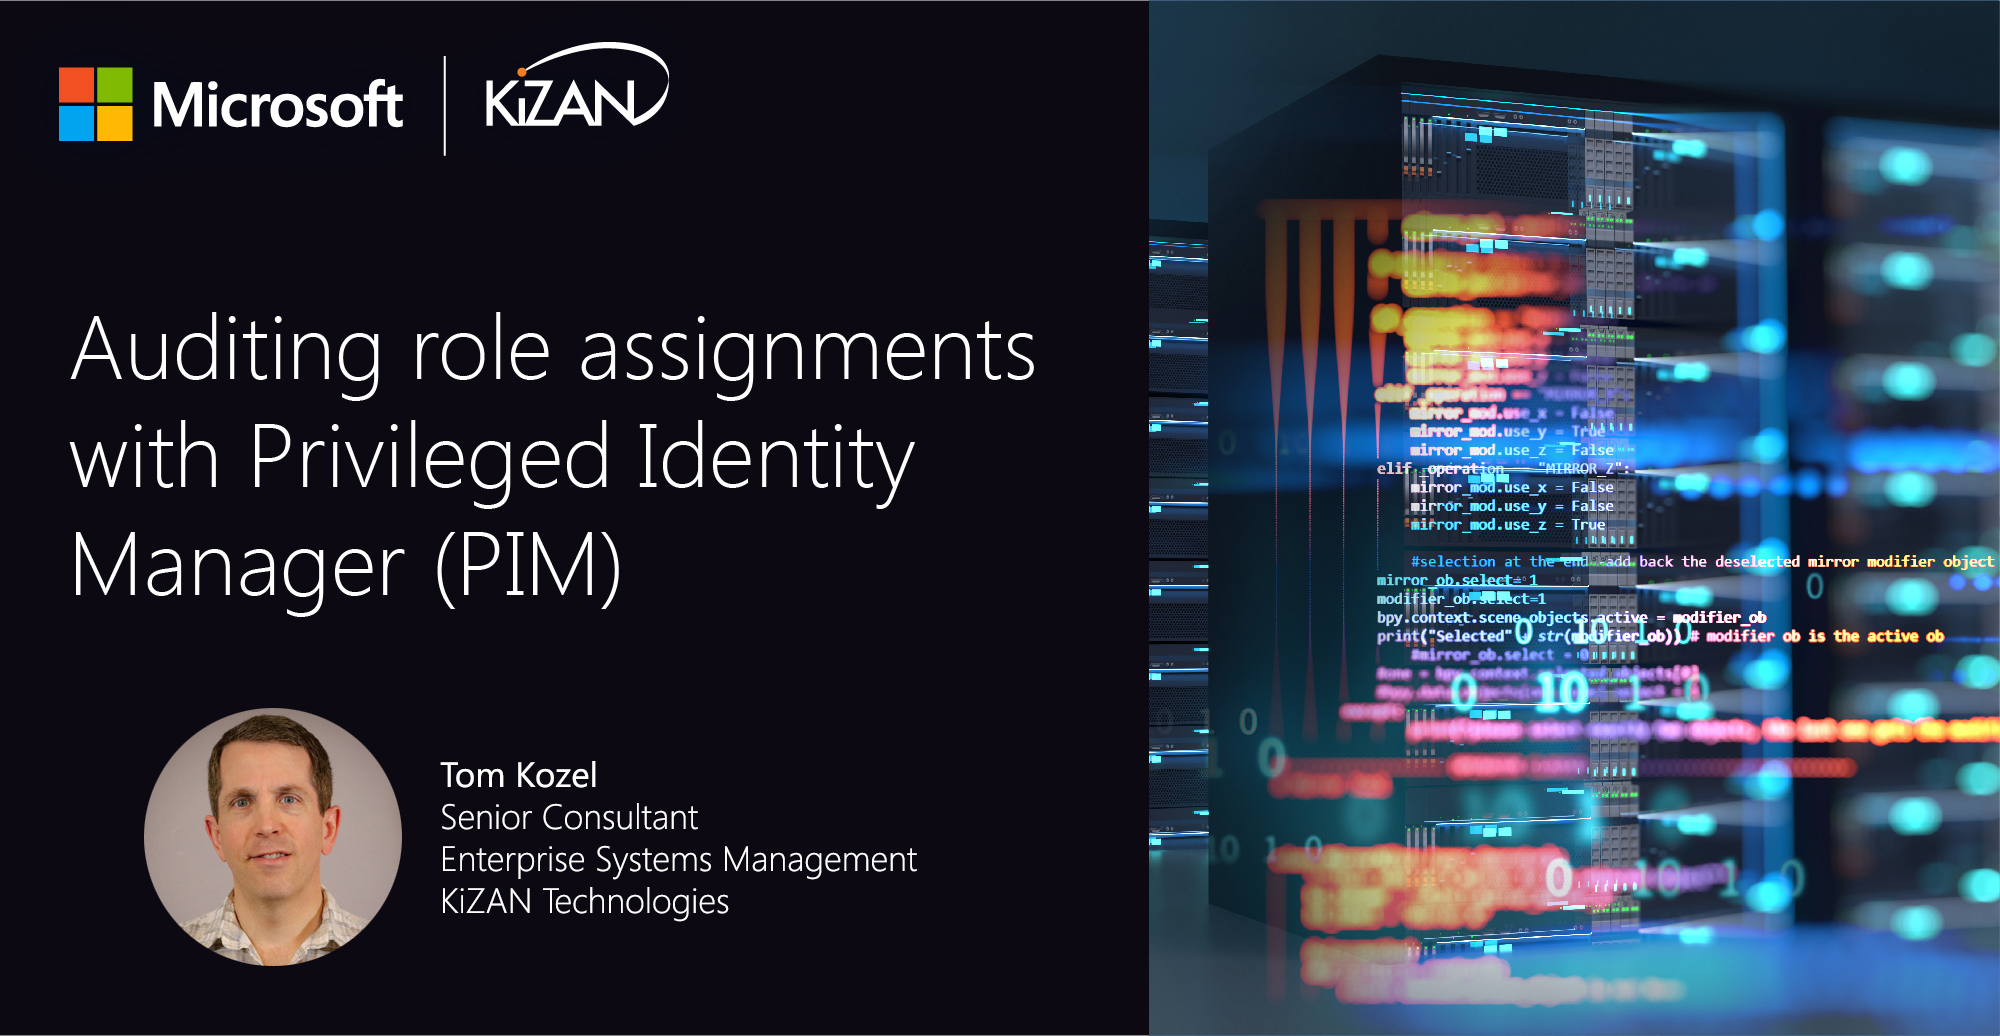 Auditing role assignments with Privileged Identity Manager (PIM)